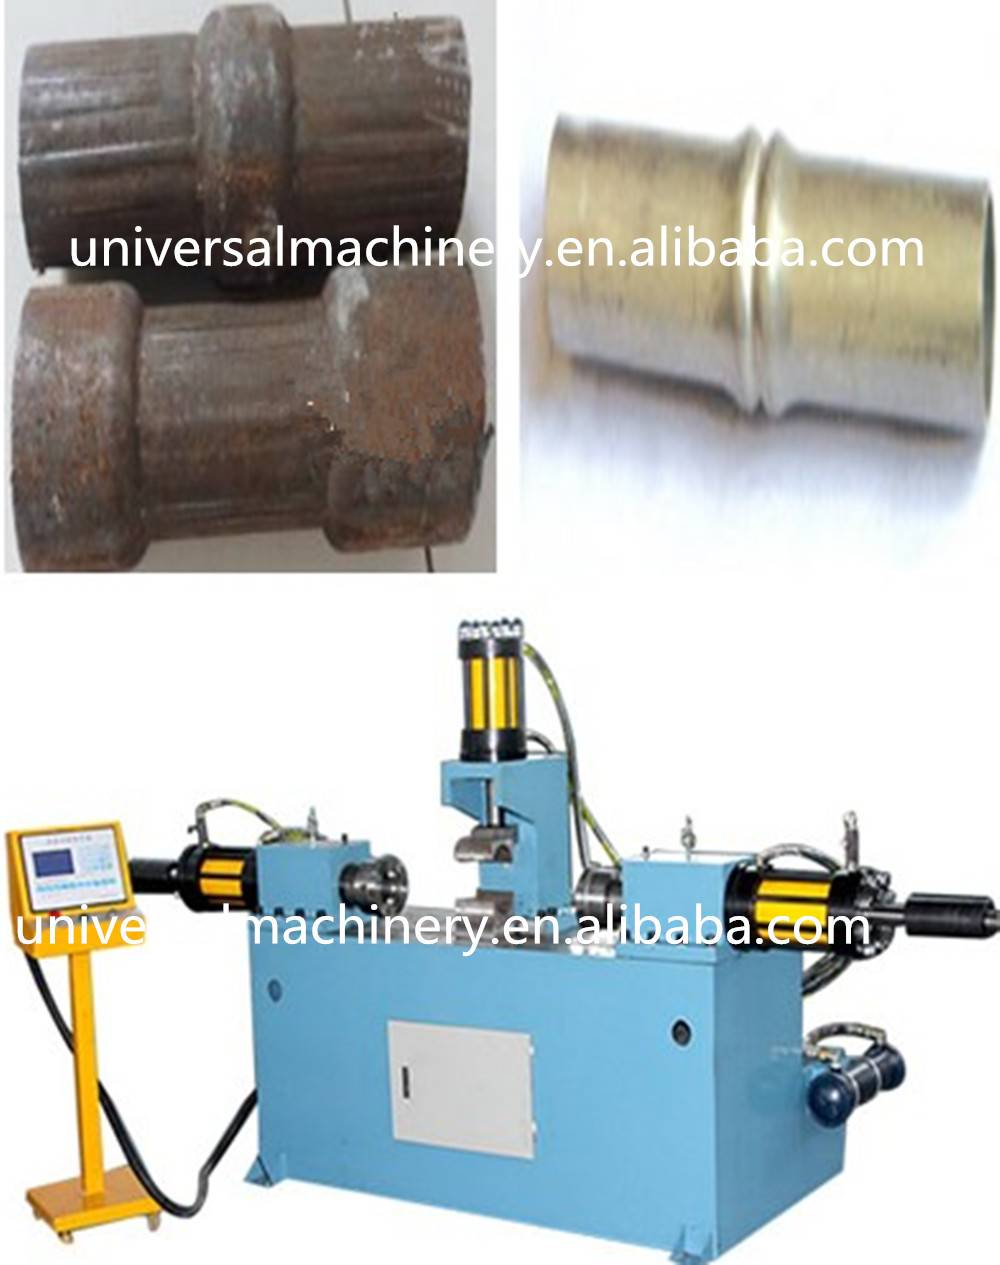 China Factory price Pipe Reducing Machine for Reducing Expanding Flanging